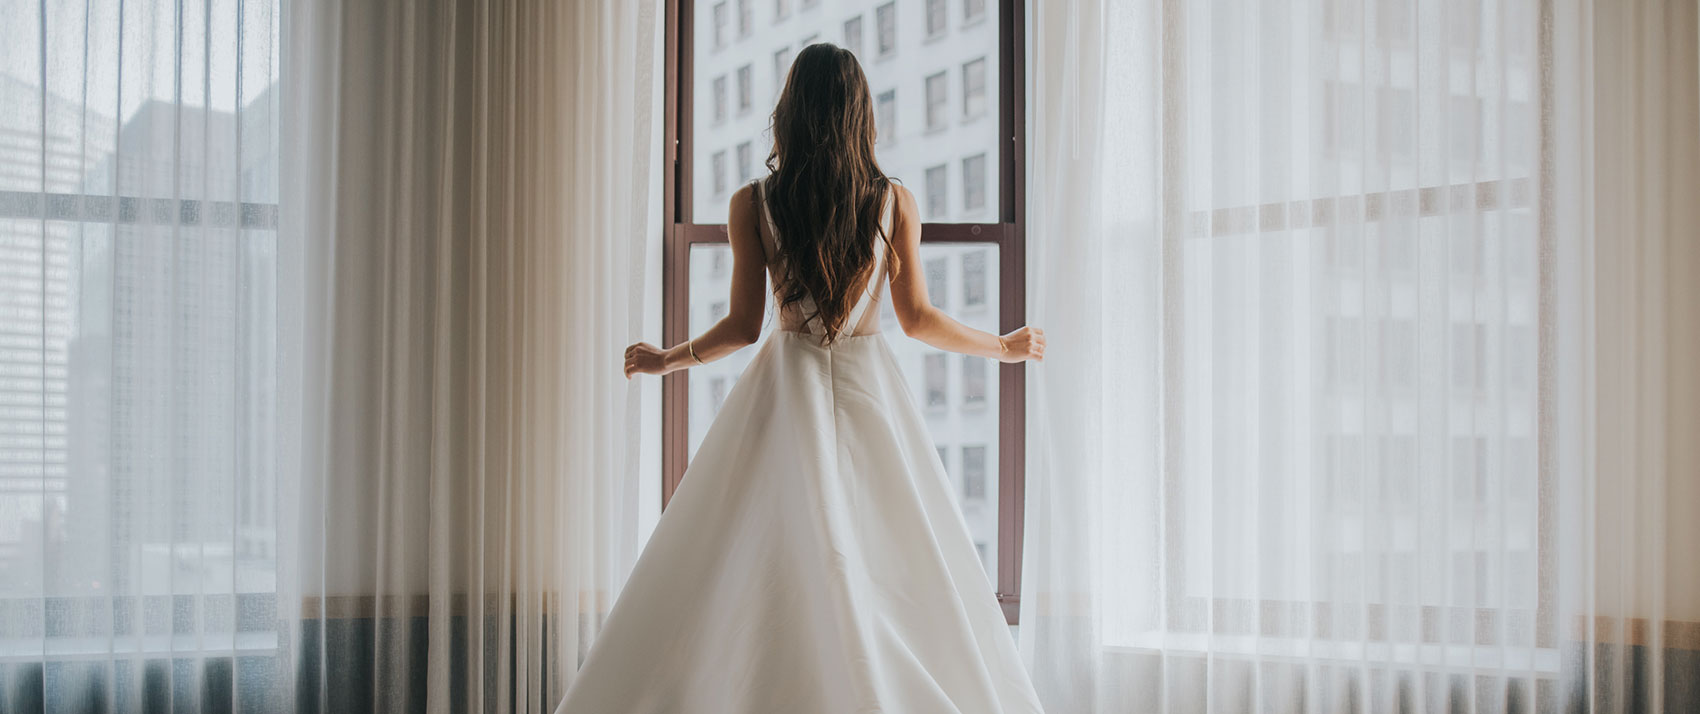 Vows There, Stay Here Brand Image. Bride standing in white wedding dress around window